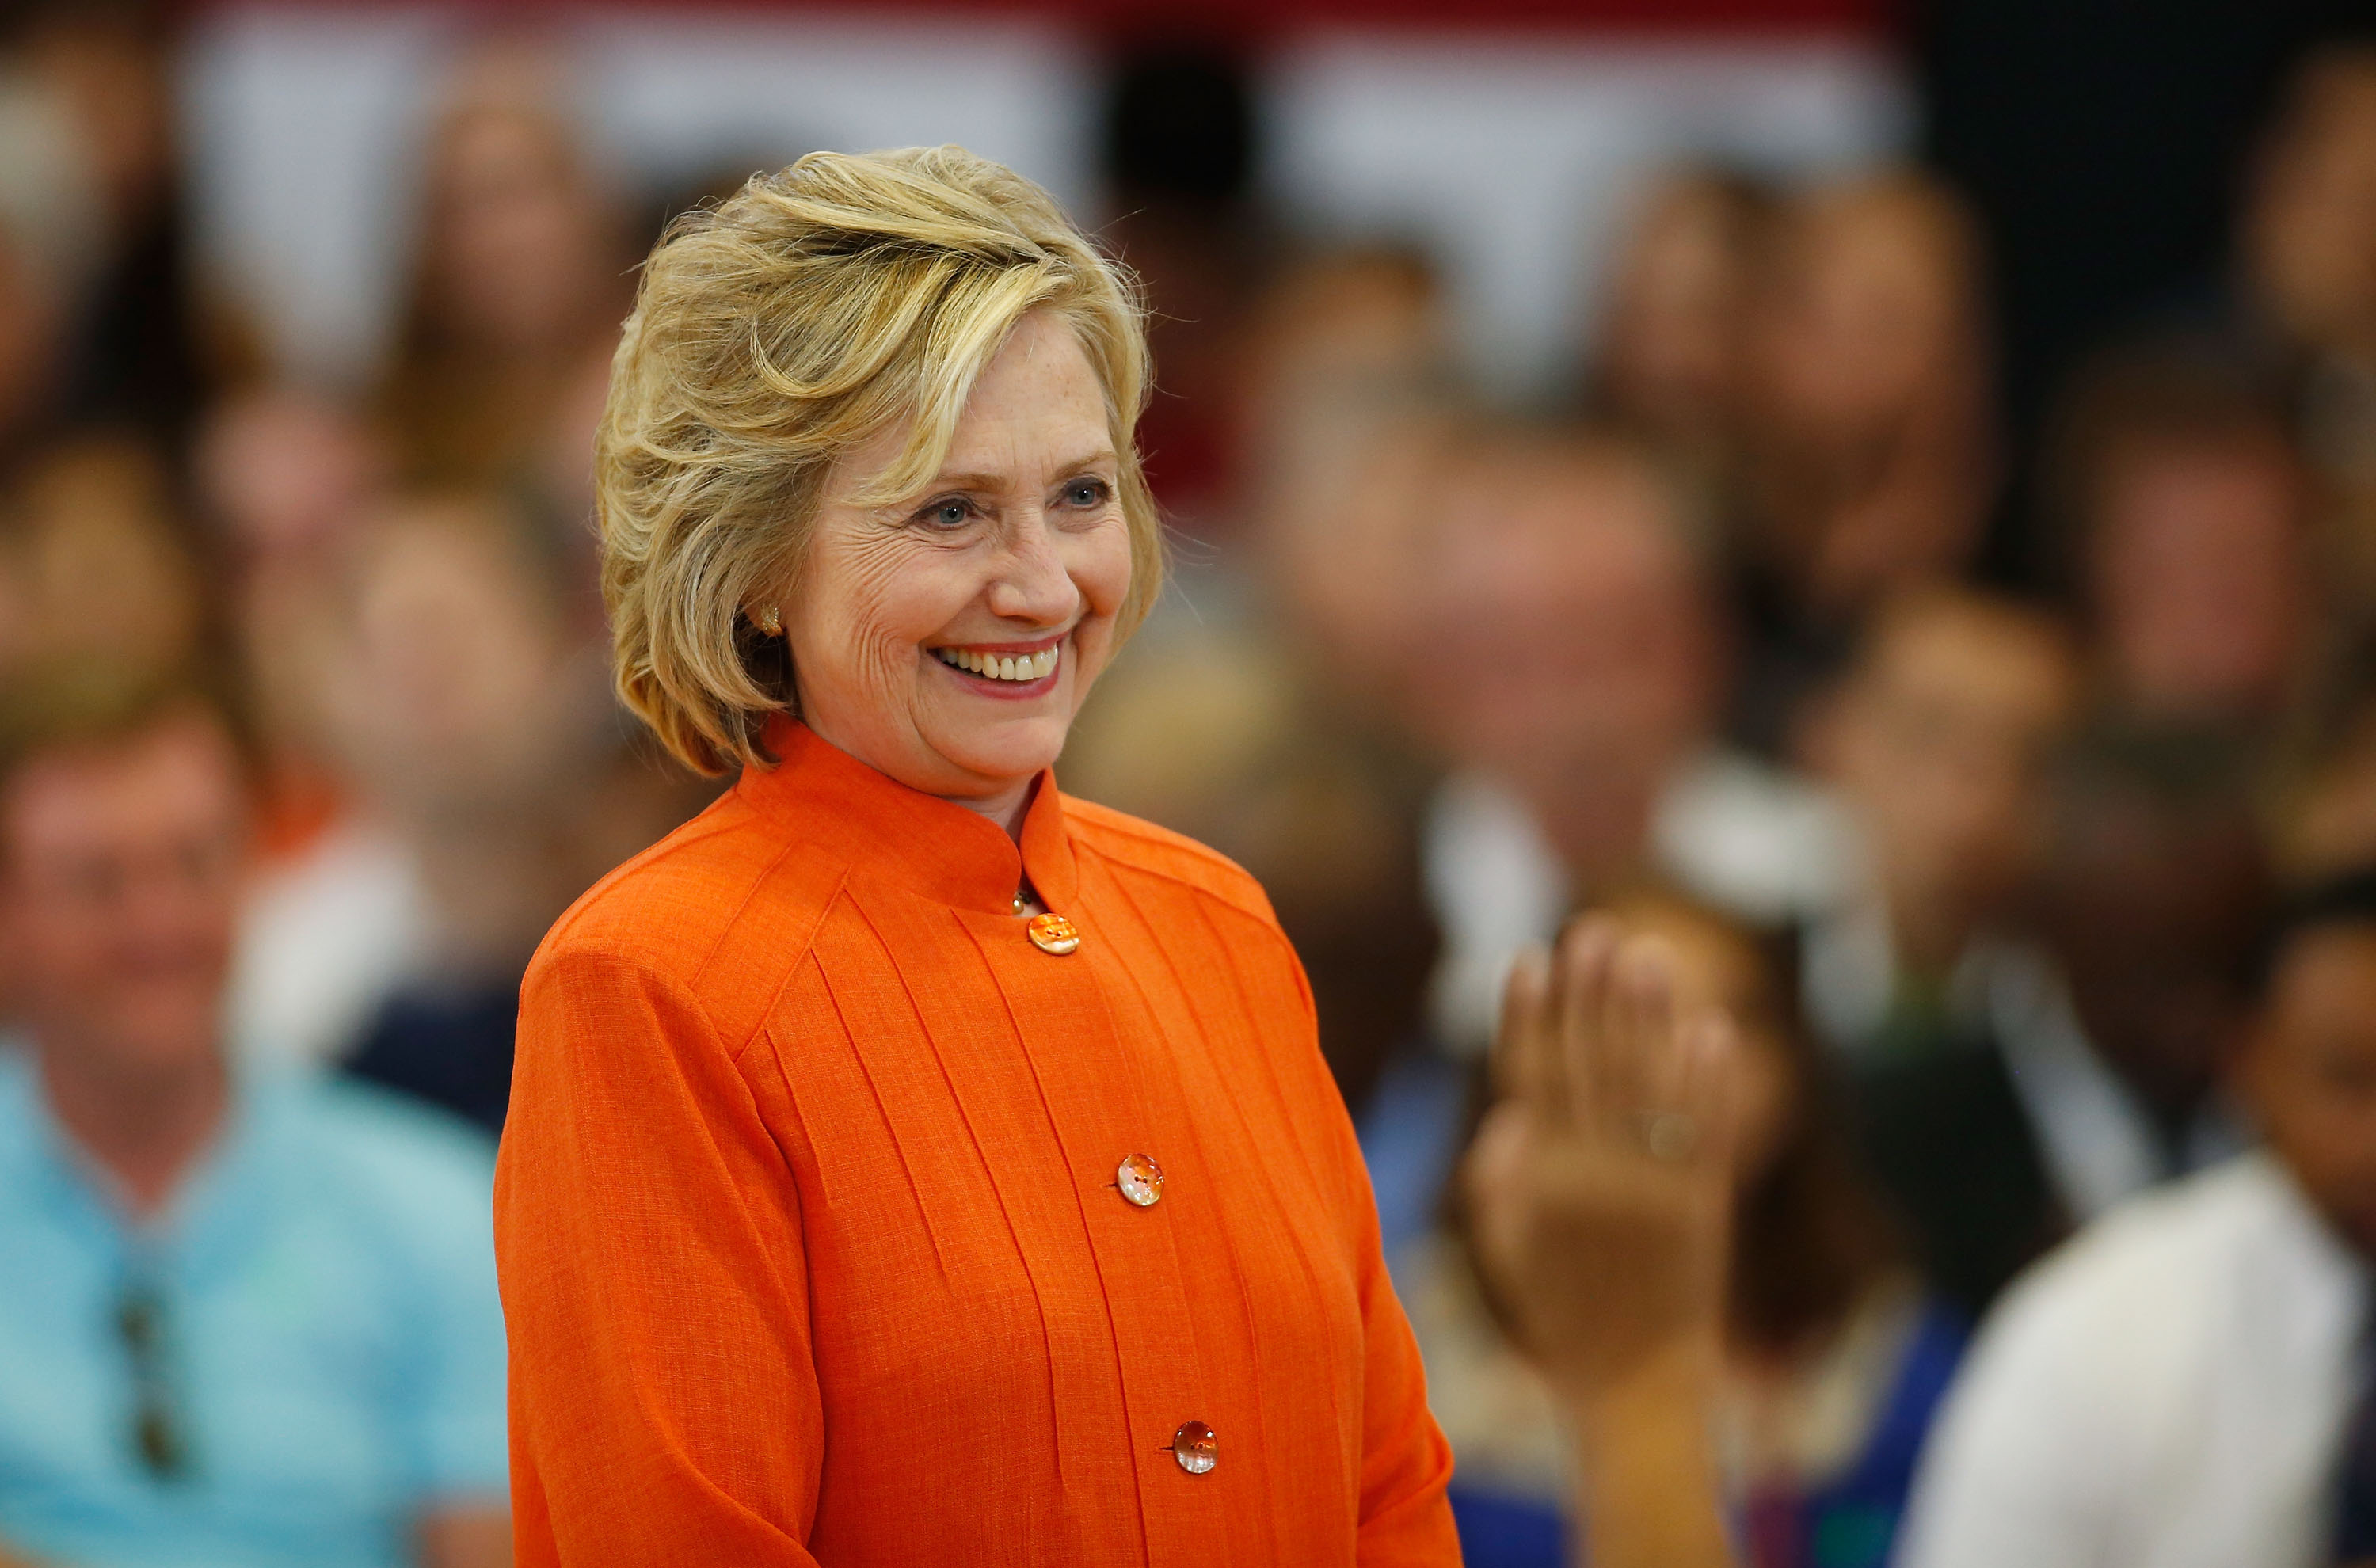 Democratic presidential candidate and former U.S. Secretary of State Hillary Clinton delivers remarks during a campaign stop at Dr. William U. Pearson Community Center on August 18, 2015 in North Las Vegas, Nevada.